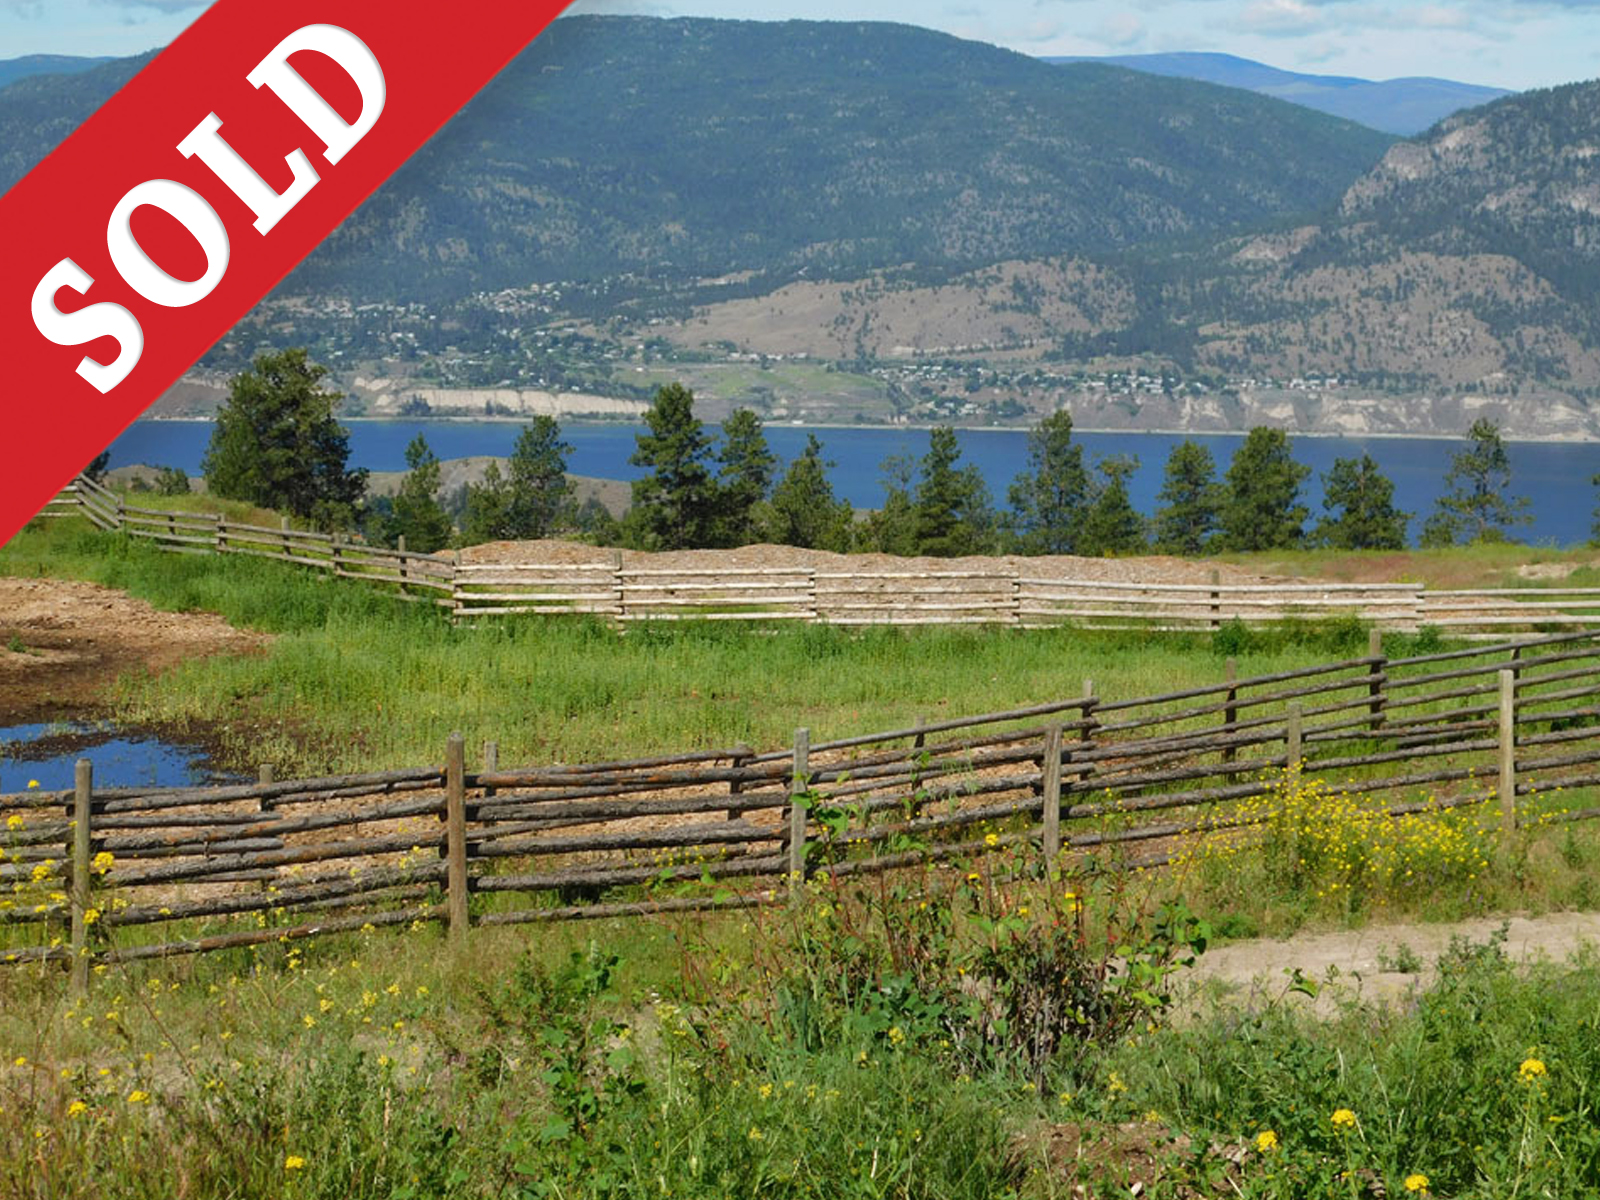 SOLD 1313 Greyback Mountain Road  > Penticton, BC  | 80.83 Acres | Runs 200 Cow/Calf Pairs | Fenced & Fenced | Crown Grazing Lease | 100×80 Riding Arena